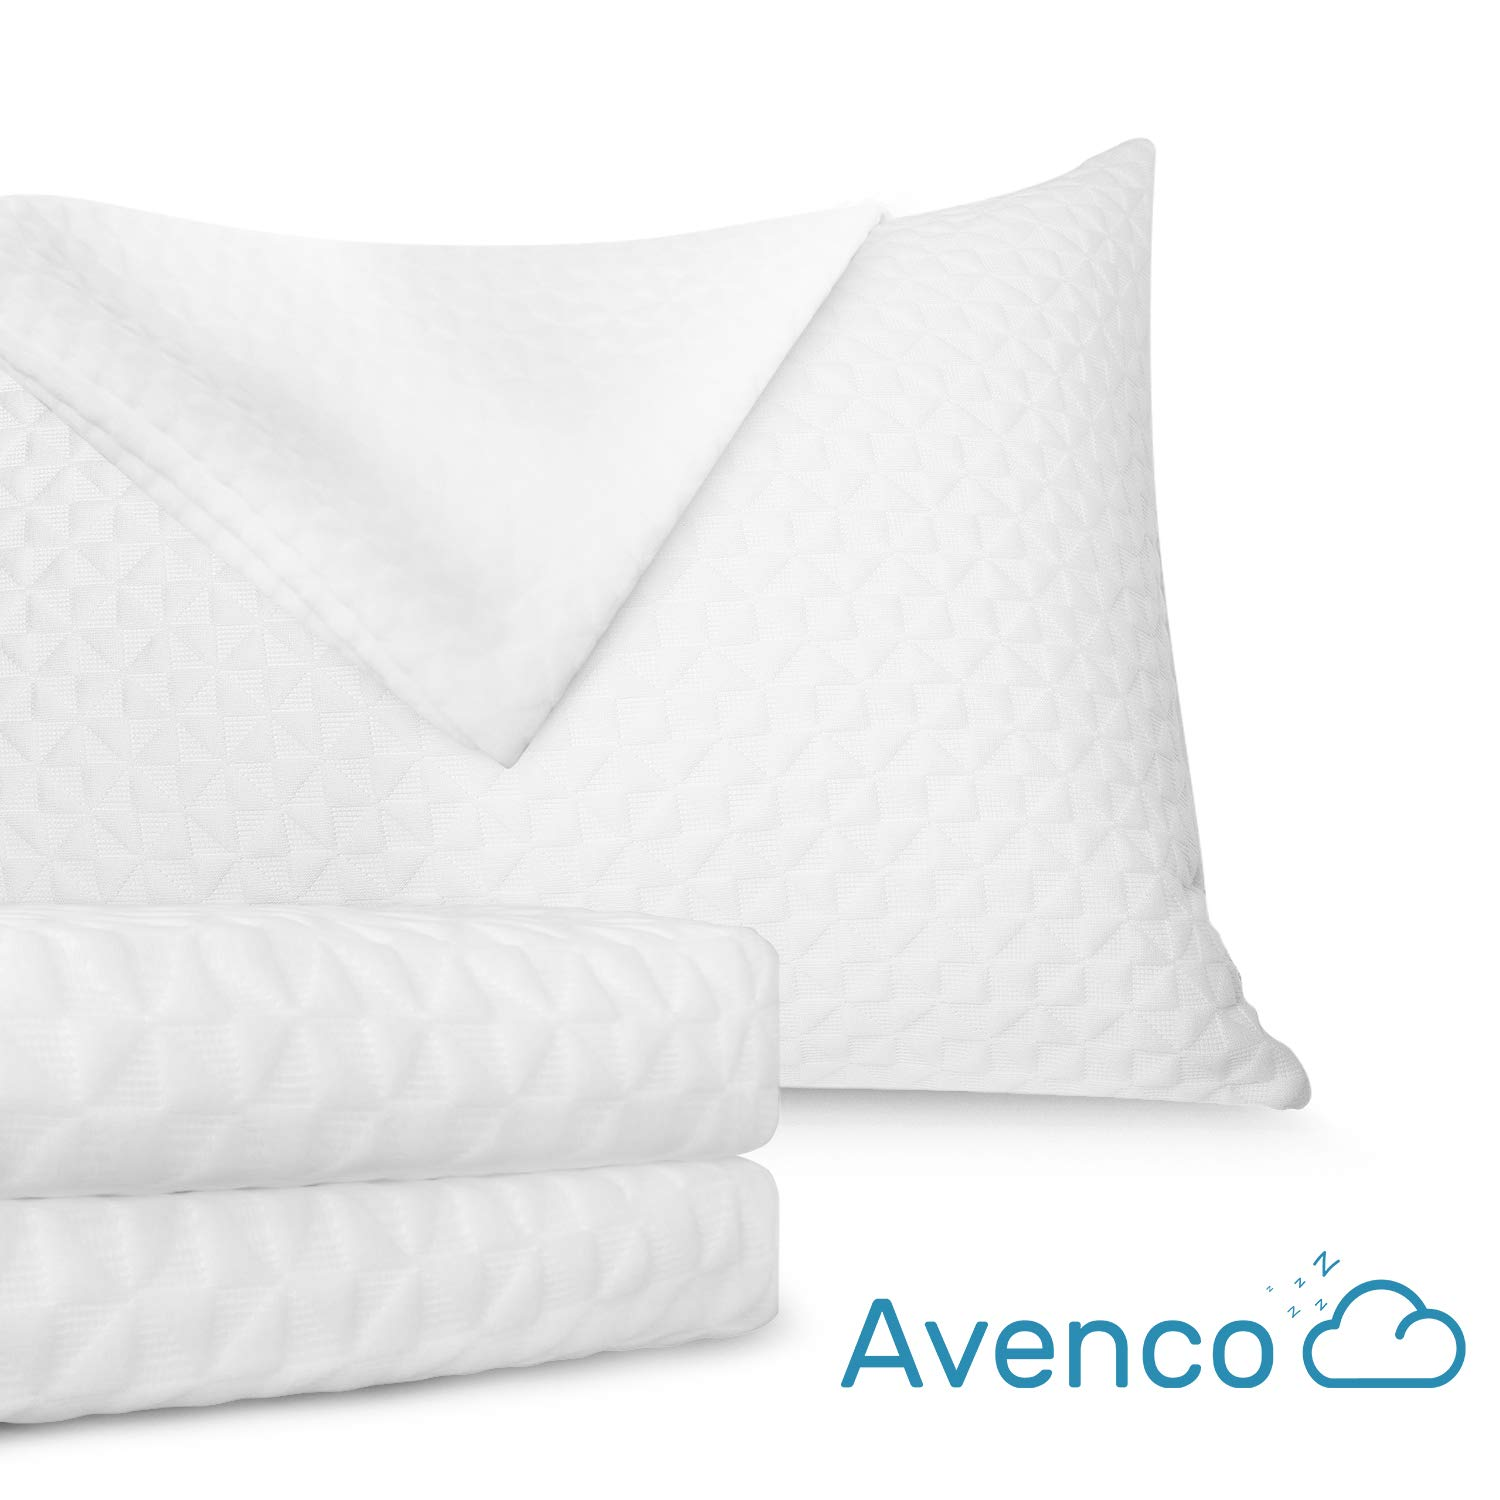 Avenco Pillow Protectors, Concealed Zipper Covers, Absorbent and Water Resistance, Breathable, King Size Set of 2